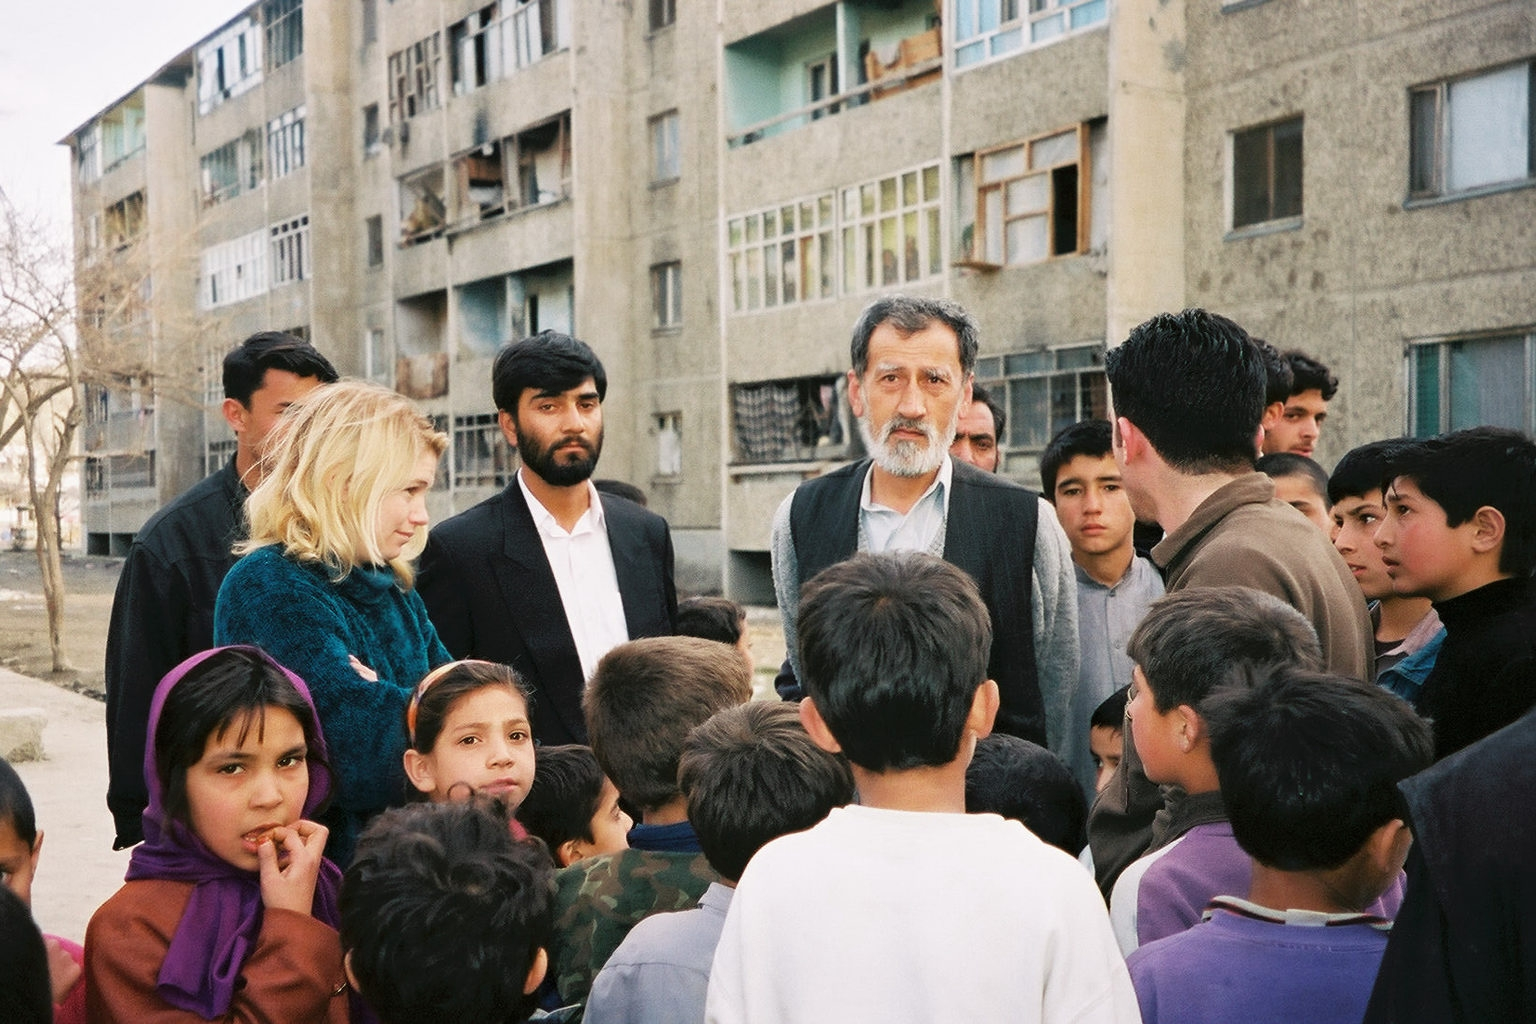 Four adults stand in front of a crowd of children in Kabul. There is a grey apartment building behind them.